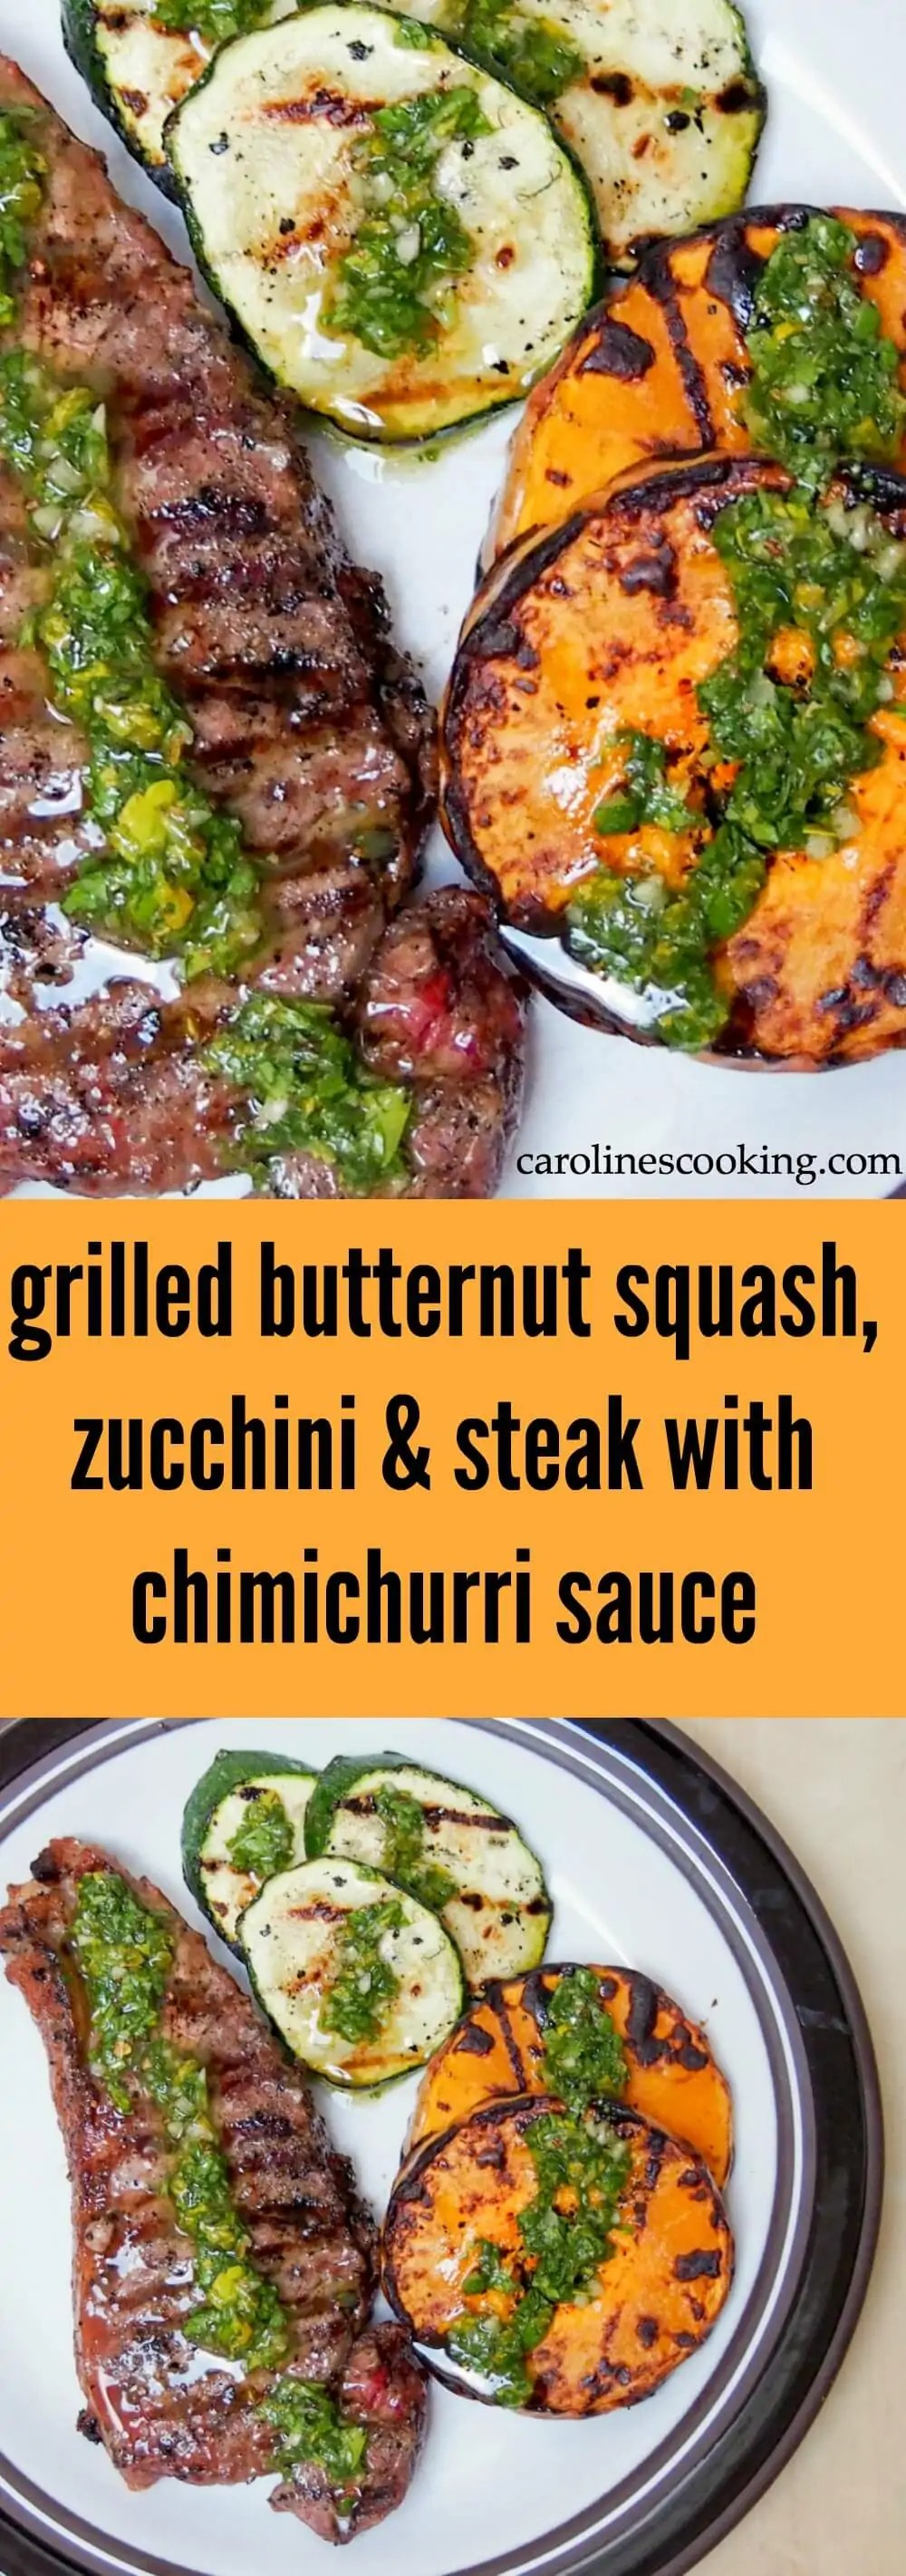 A simple chimichurri sauce transforms already tasty grilled butternut squash, zucchini and steak into a truly delicious but quick and easy meal.